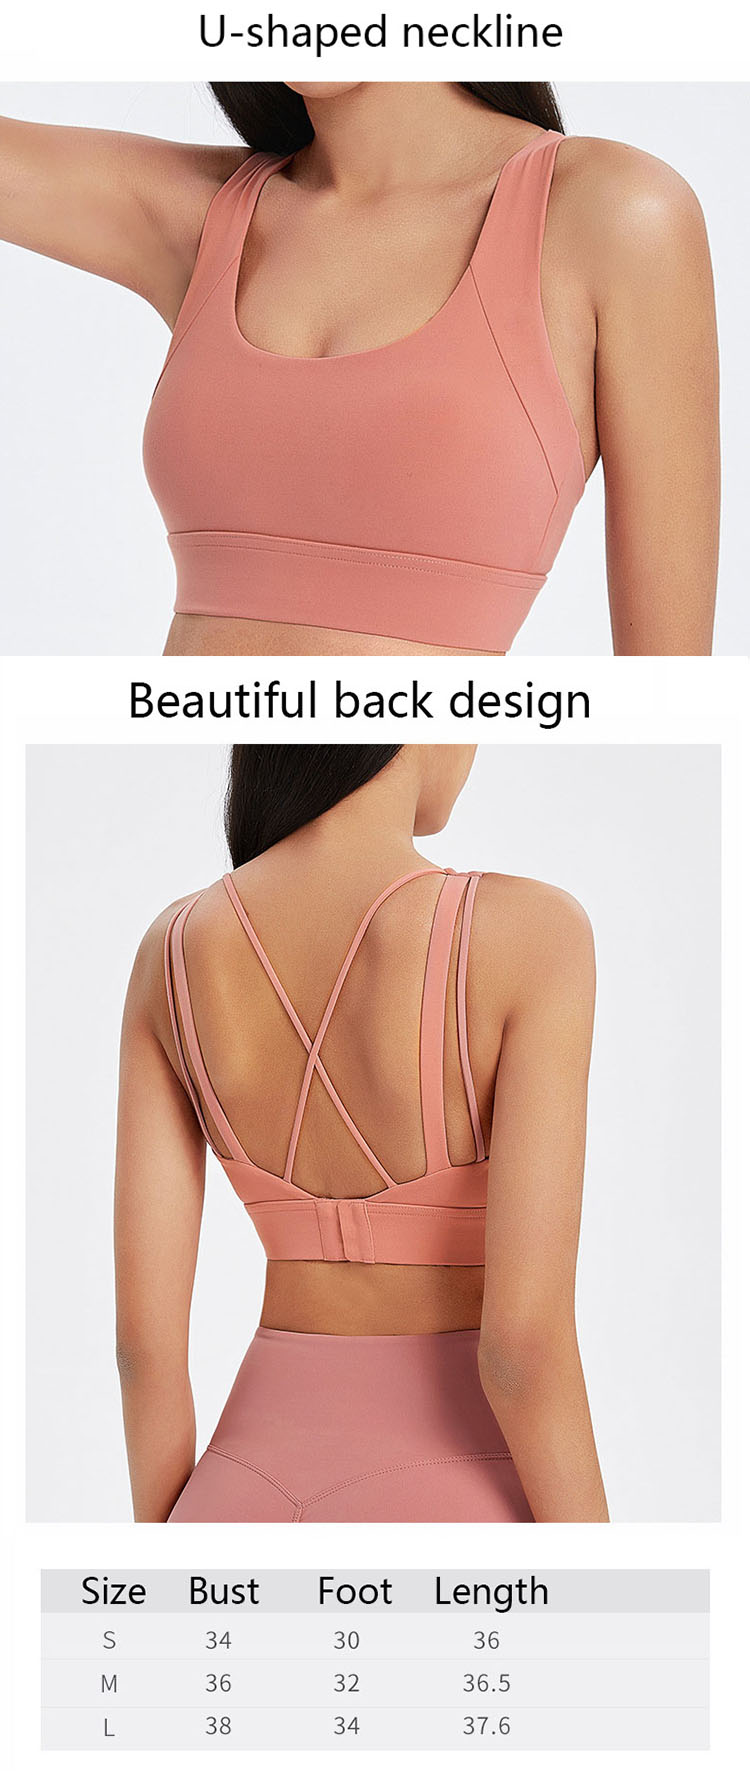 Minimalist clothing focuses on the functionality of hot pink sports bra